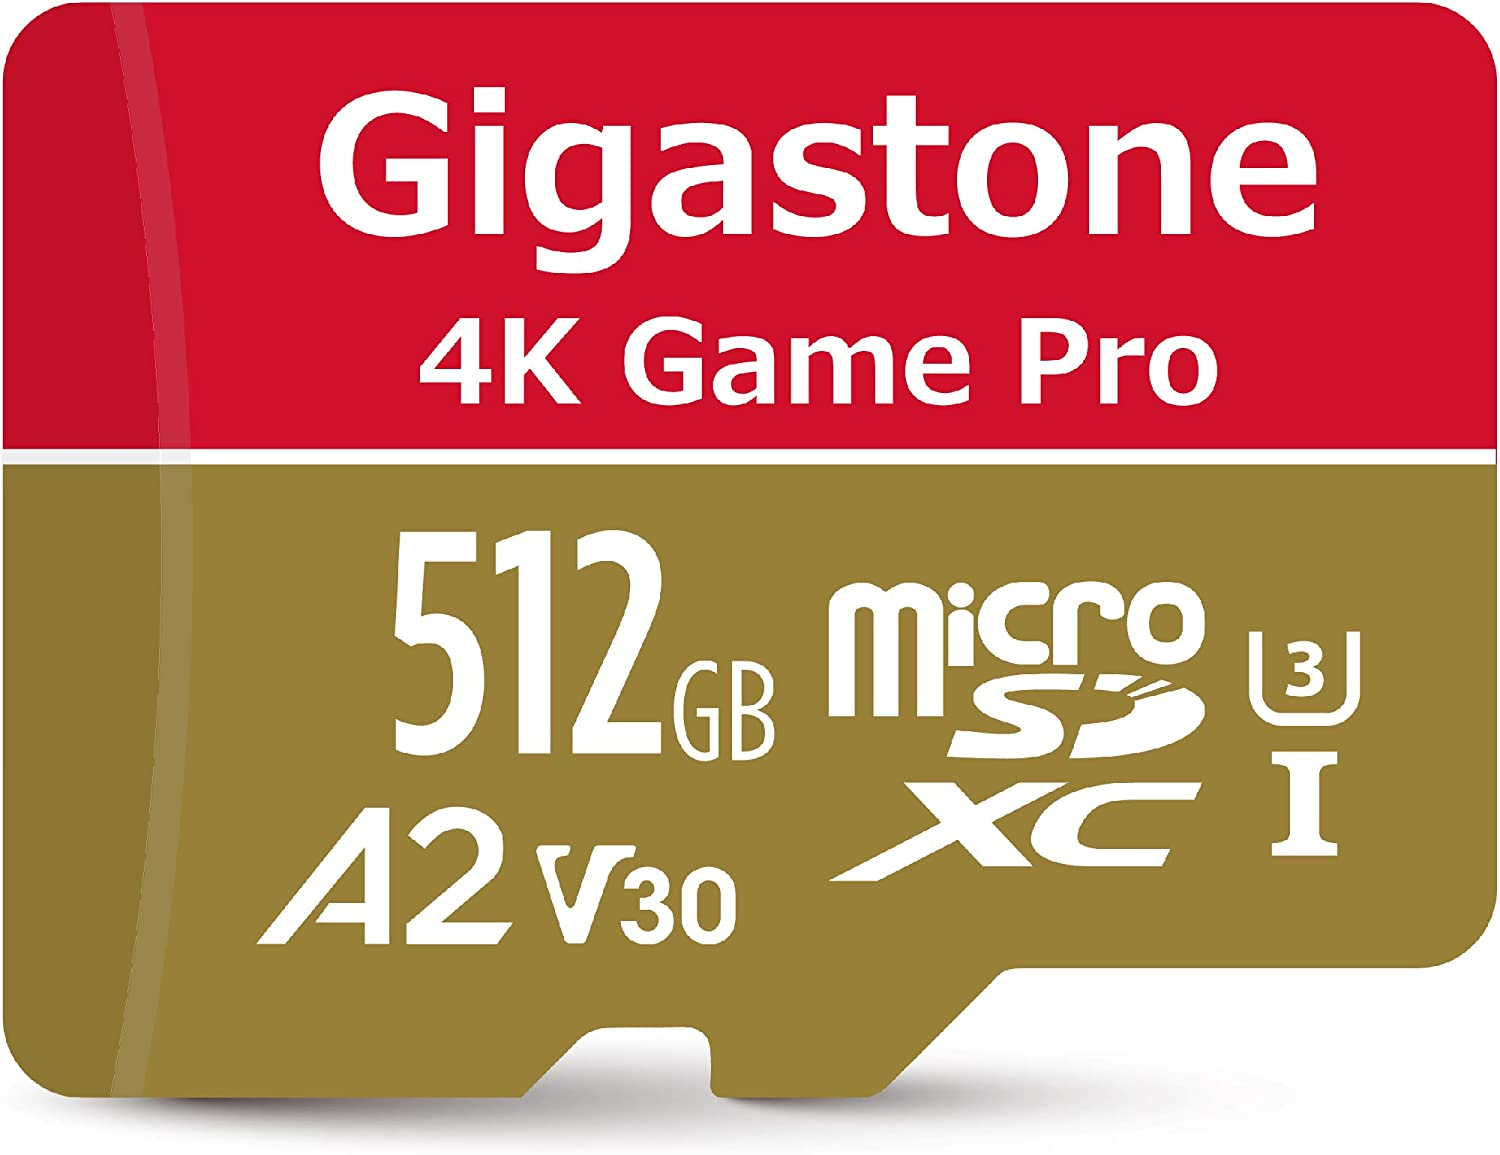 Gigastone 512GB Micro SD Card, 4K Game Pro, Nintendo Switch Compatible, 4K Video Recording, R/W up to 100/80MB/s, Micro SDXC UHS-I A2 V30 Class 10